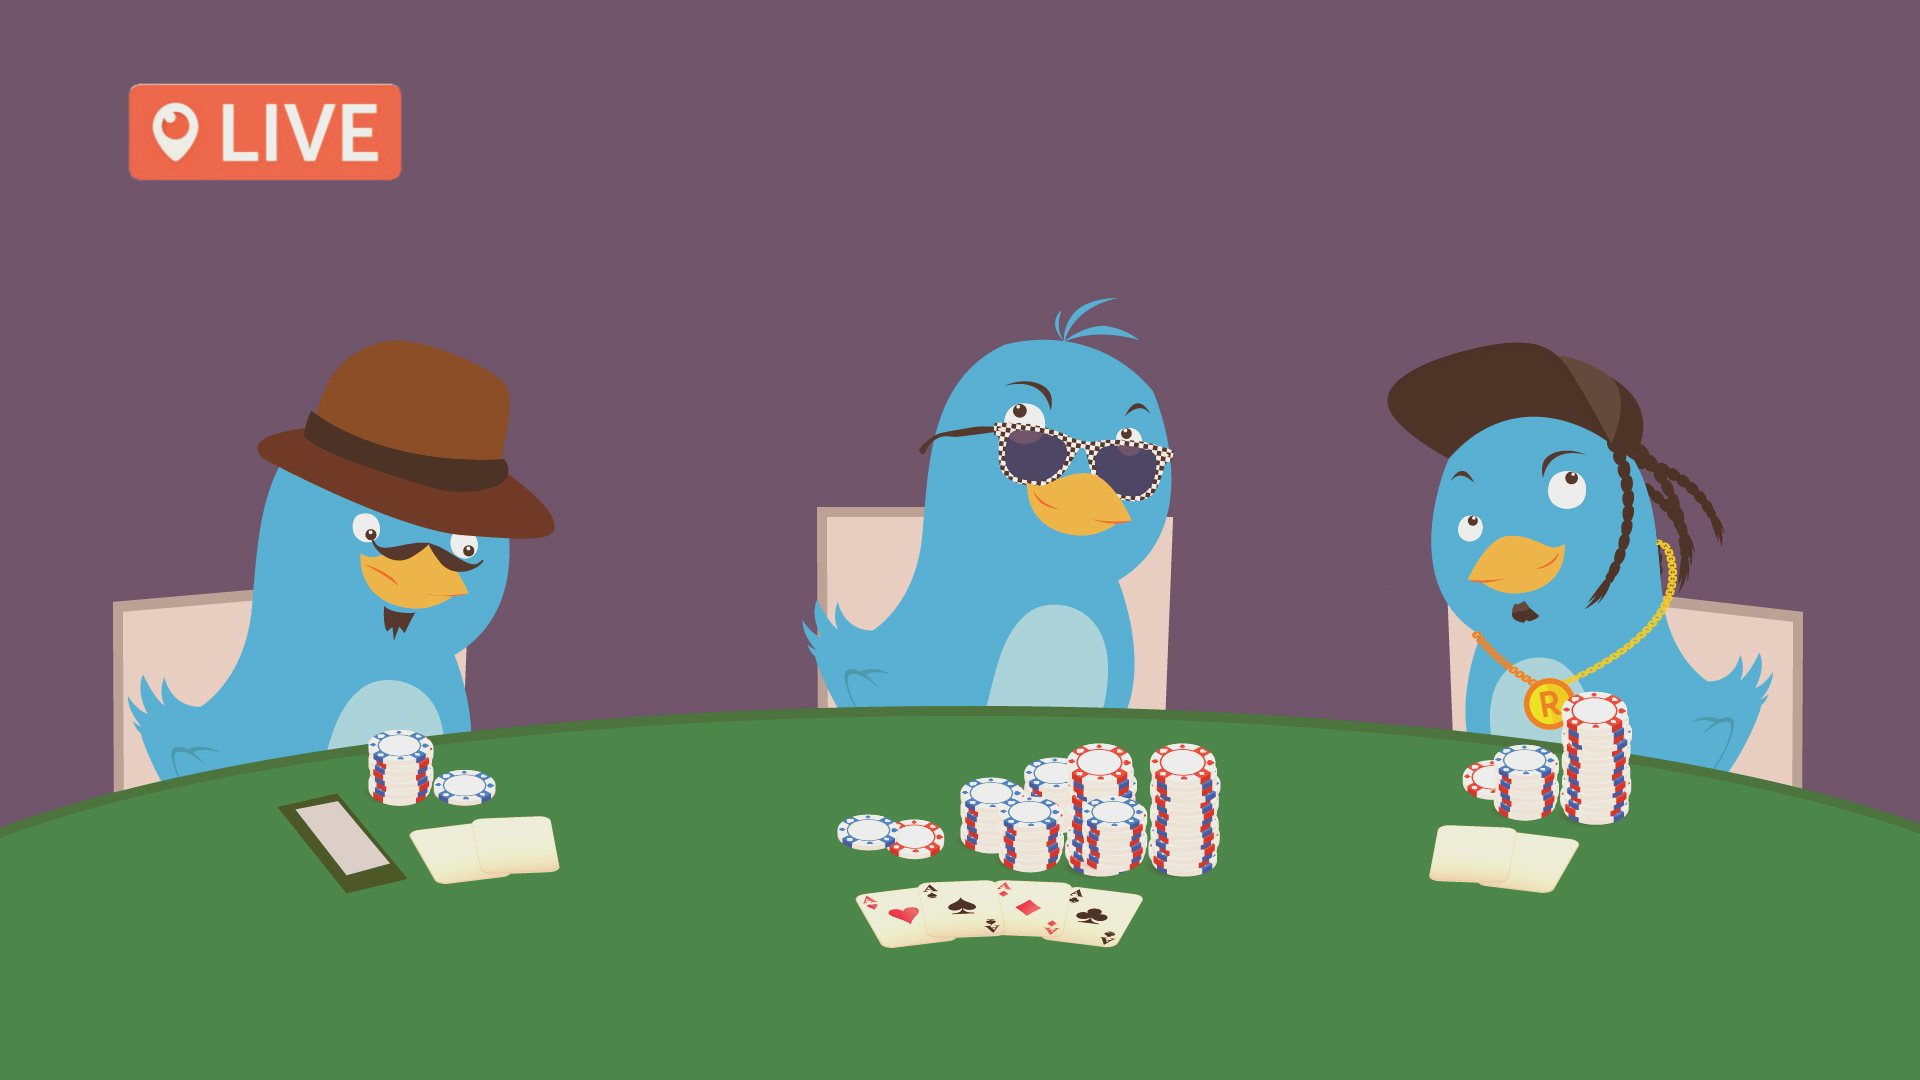 All-in di Twitter sul live streaming